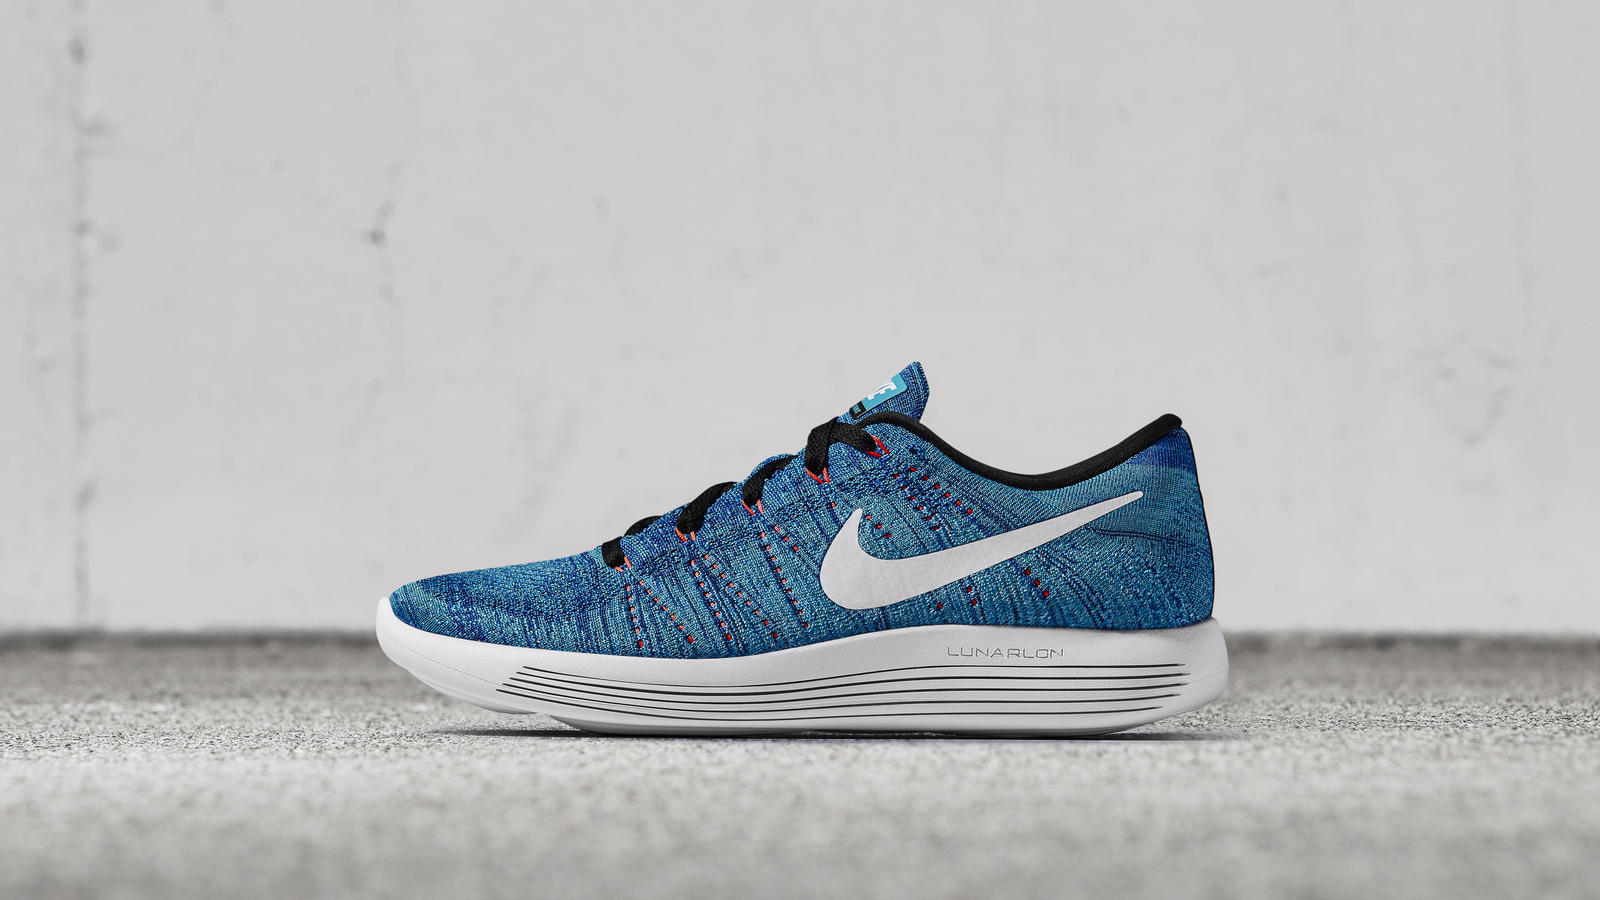 save off 25f02 54d9a Nike LunarEpic Low Flyknit